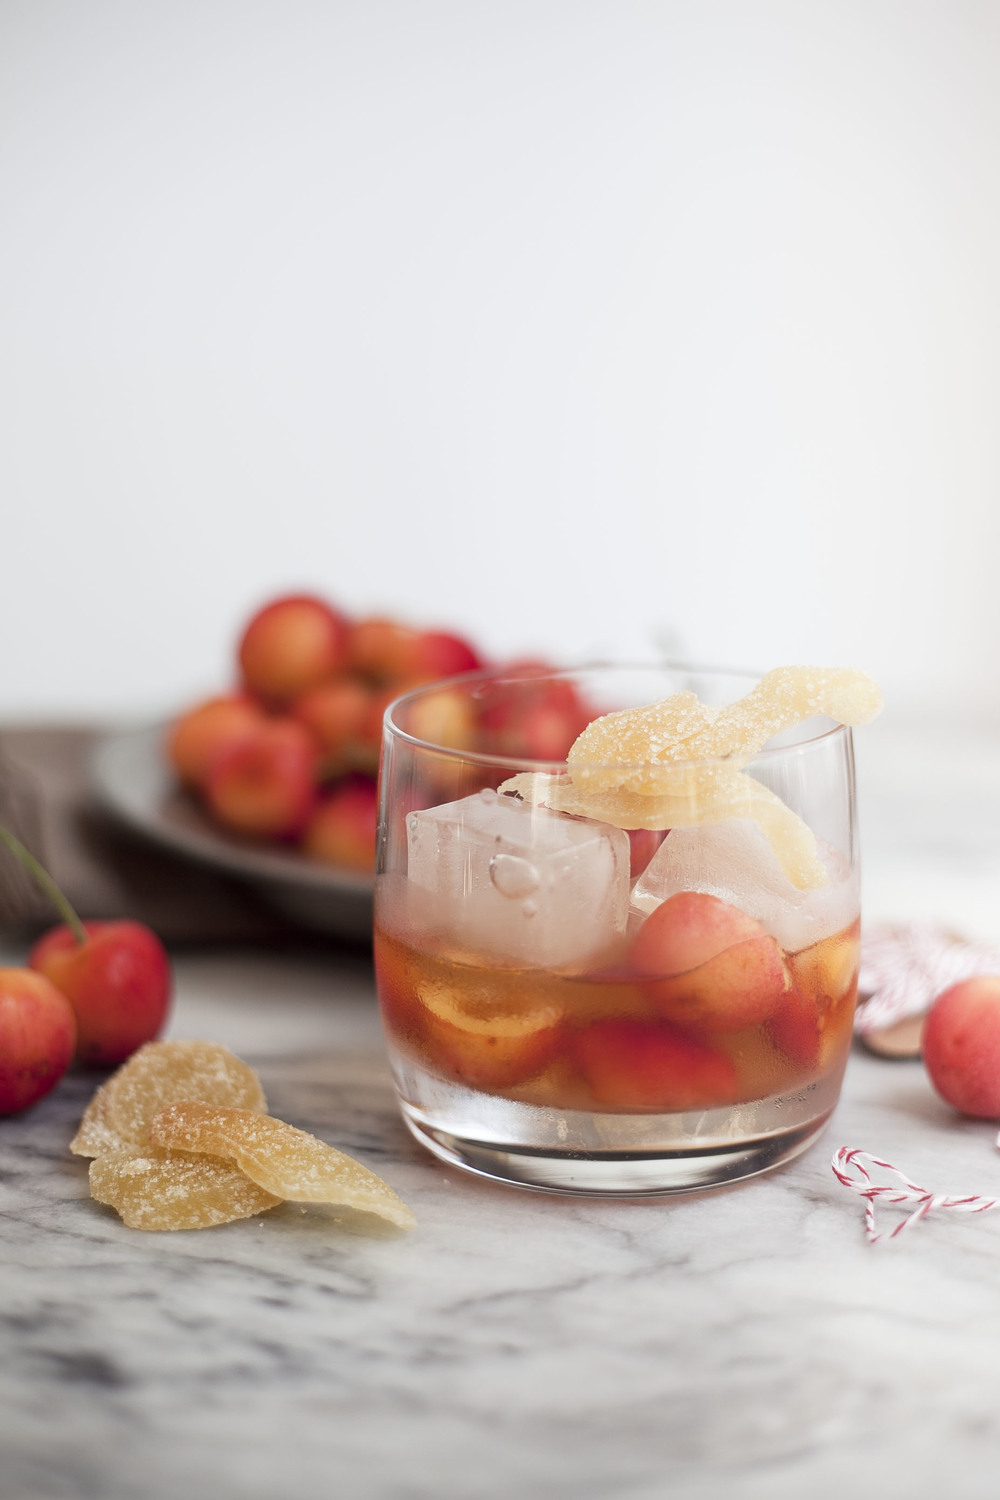 Healthier Cocktails: Bourbon Rainier Cherry Muddle